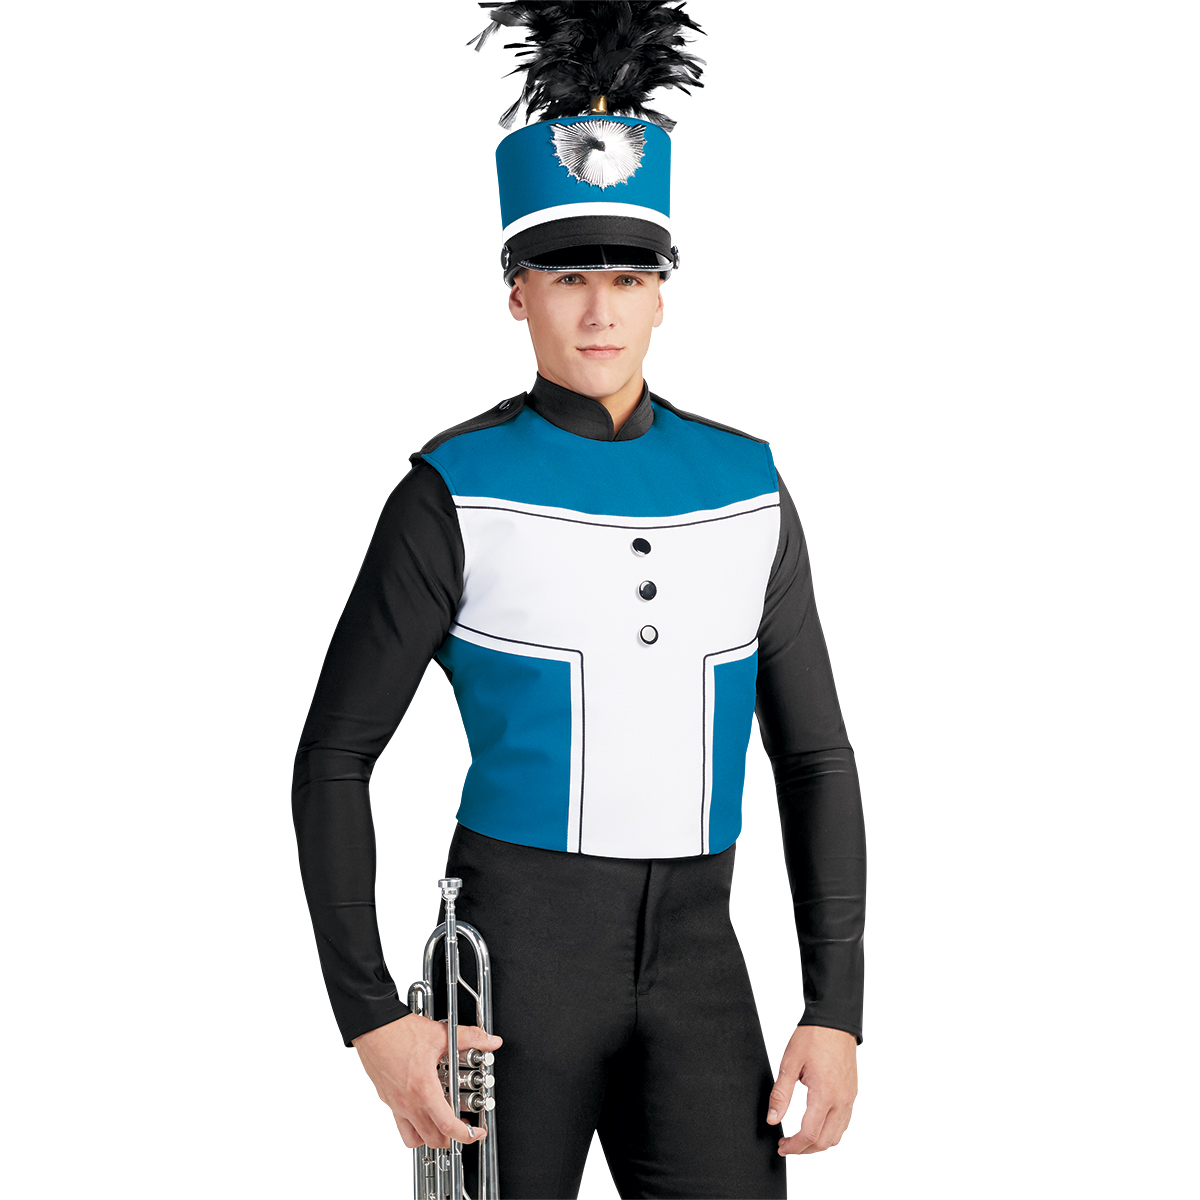 Custom Marching Jackets | Marching Band Uniforms, Marching Band